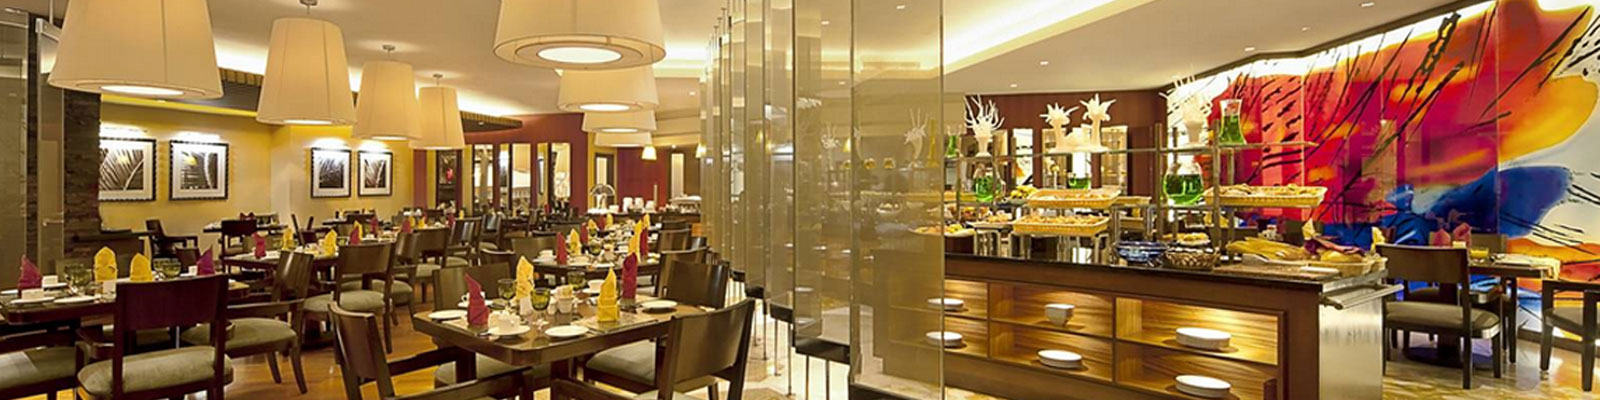 Dining at the Gulf Hotel Bahrain | Luxury 5-Star accomodation in